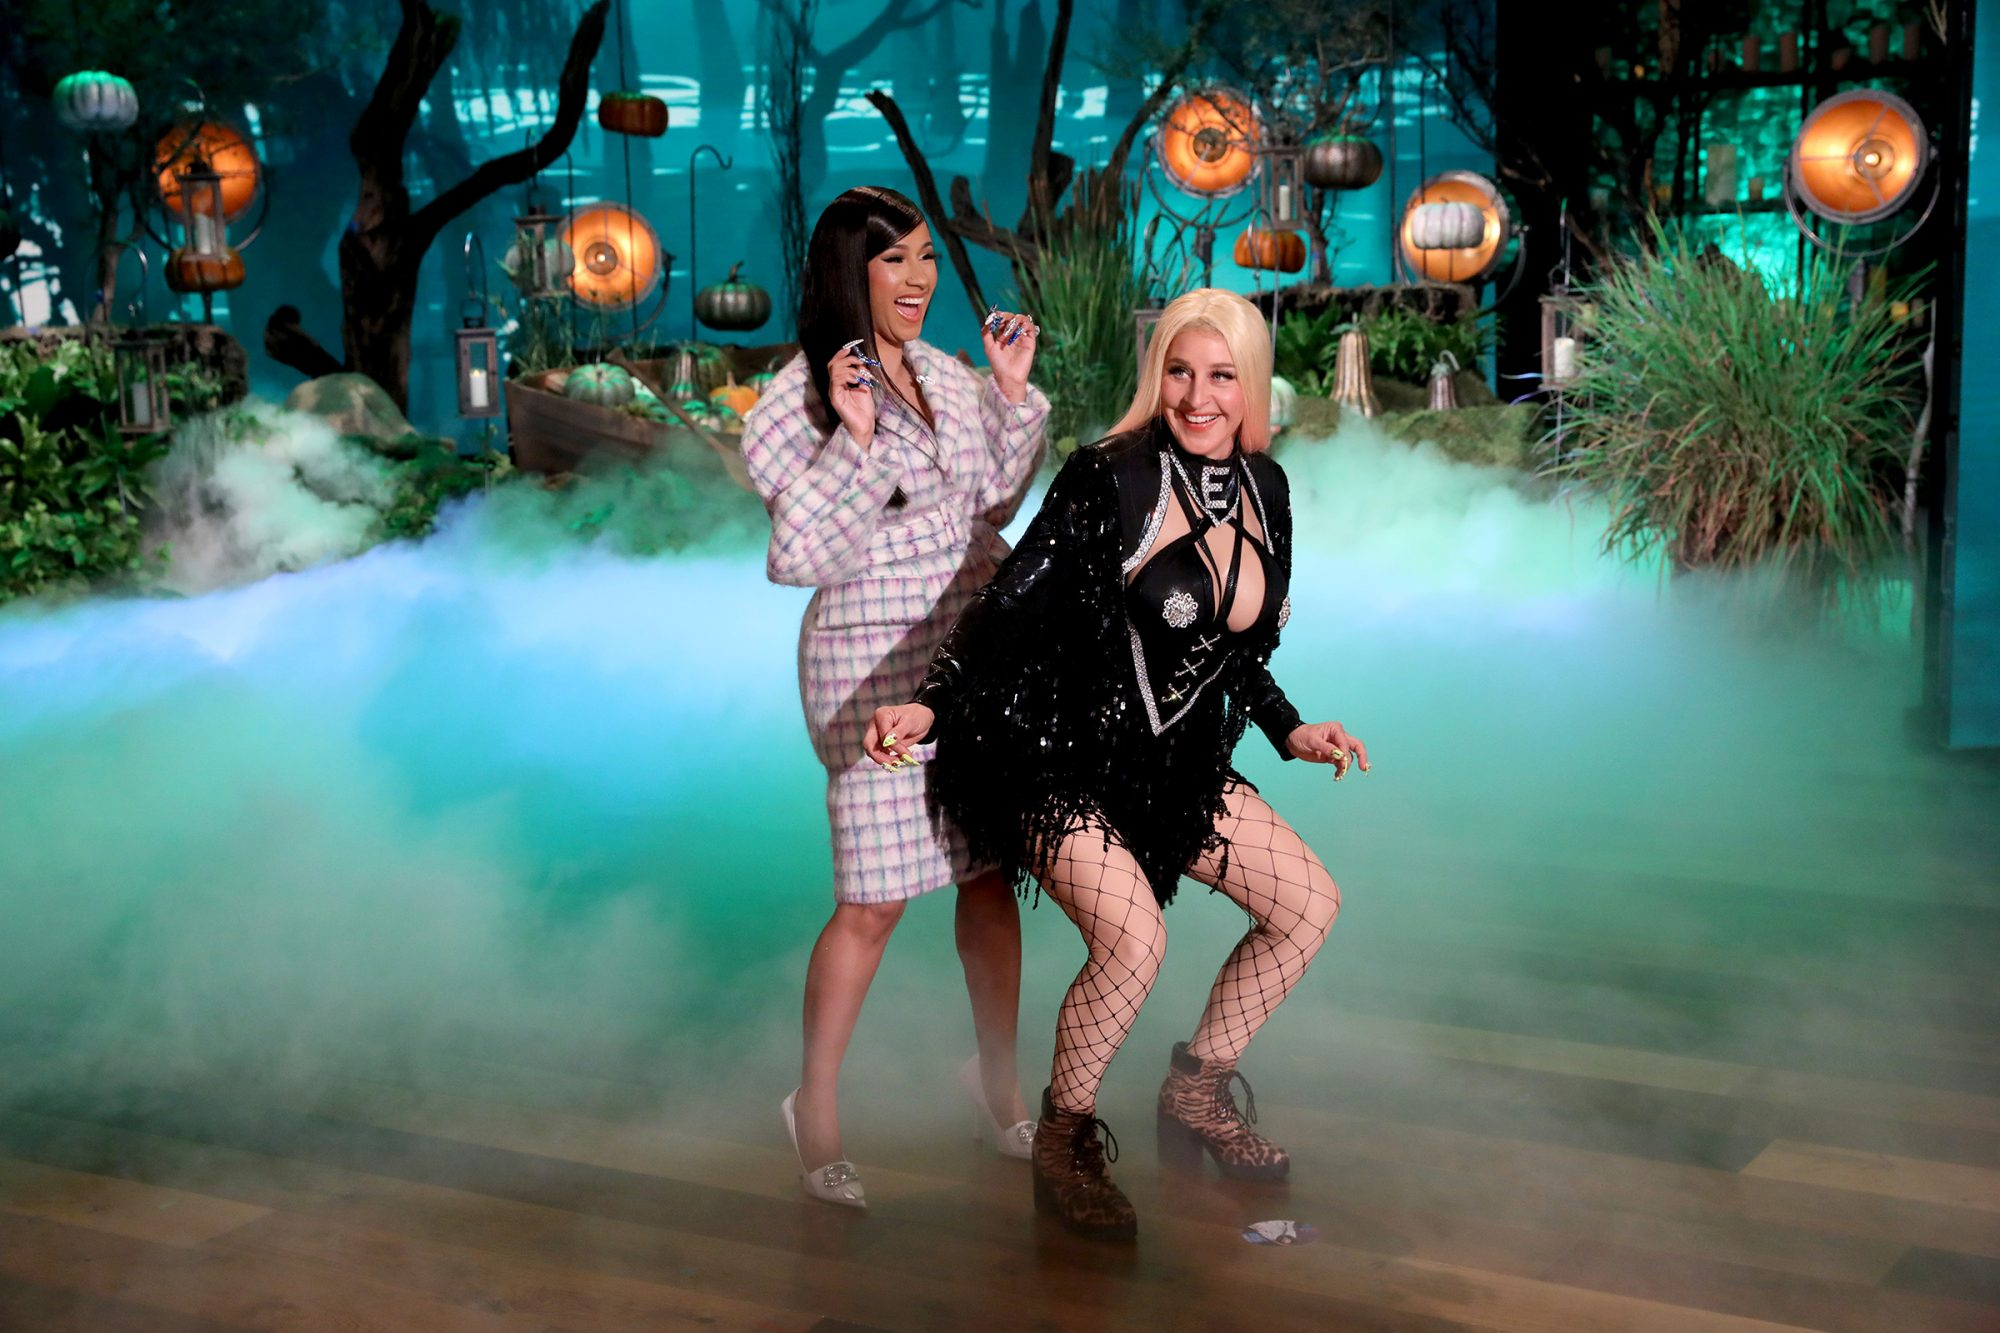 Ellen DeGeneres transforms into Cardi E, inspired by Cardi B